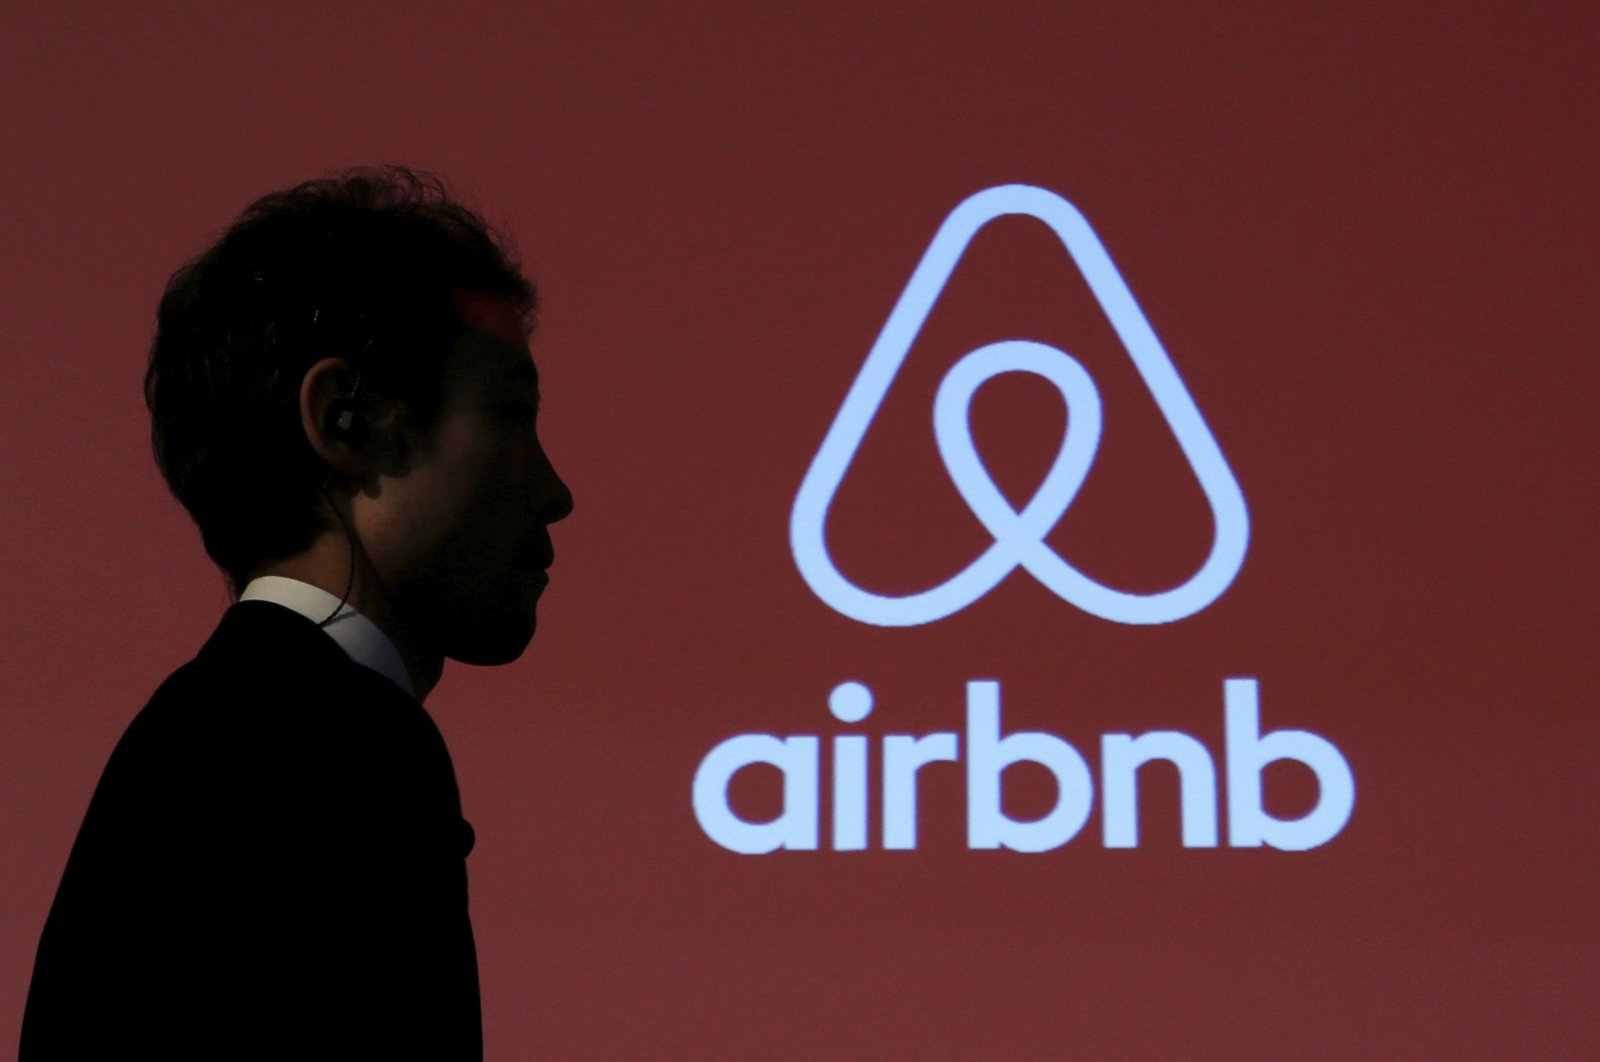 A man walks past a logo of Airbnb after a news conference in Tokyo, Japan, Nov. 26, 2015. (Reuters Photo)